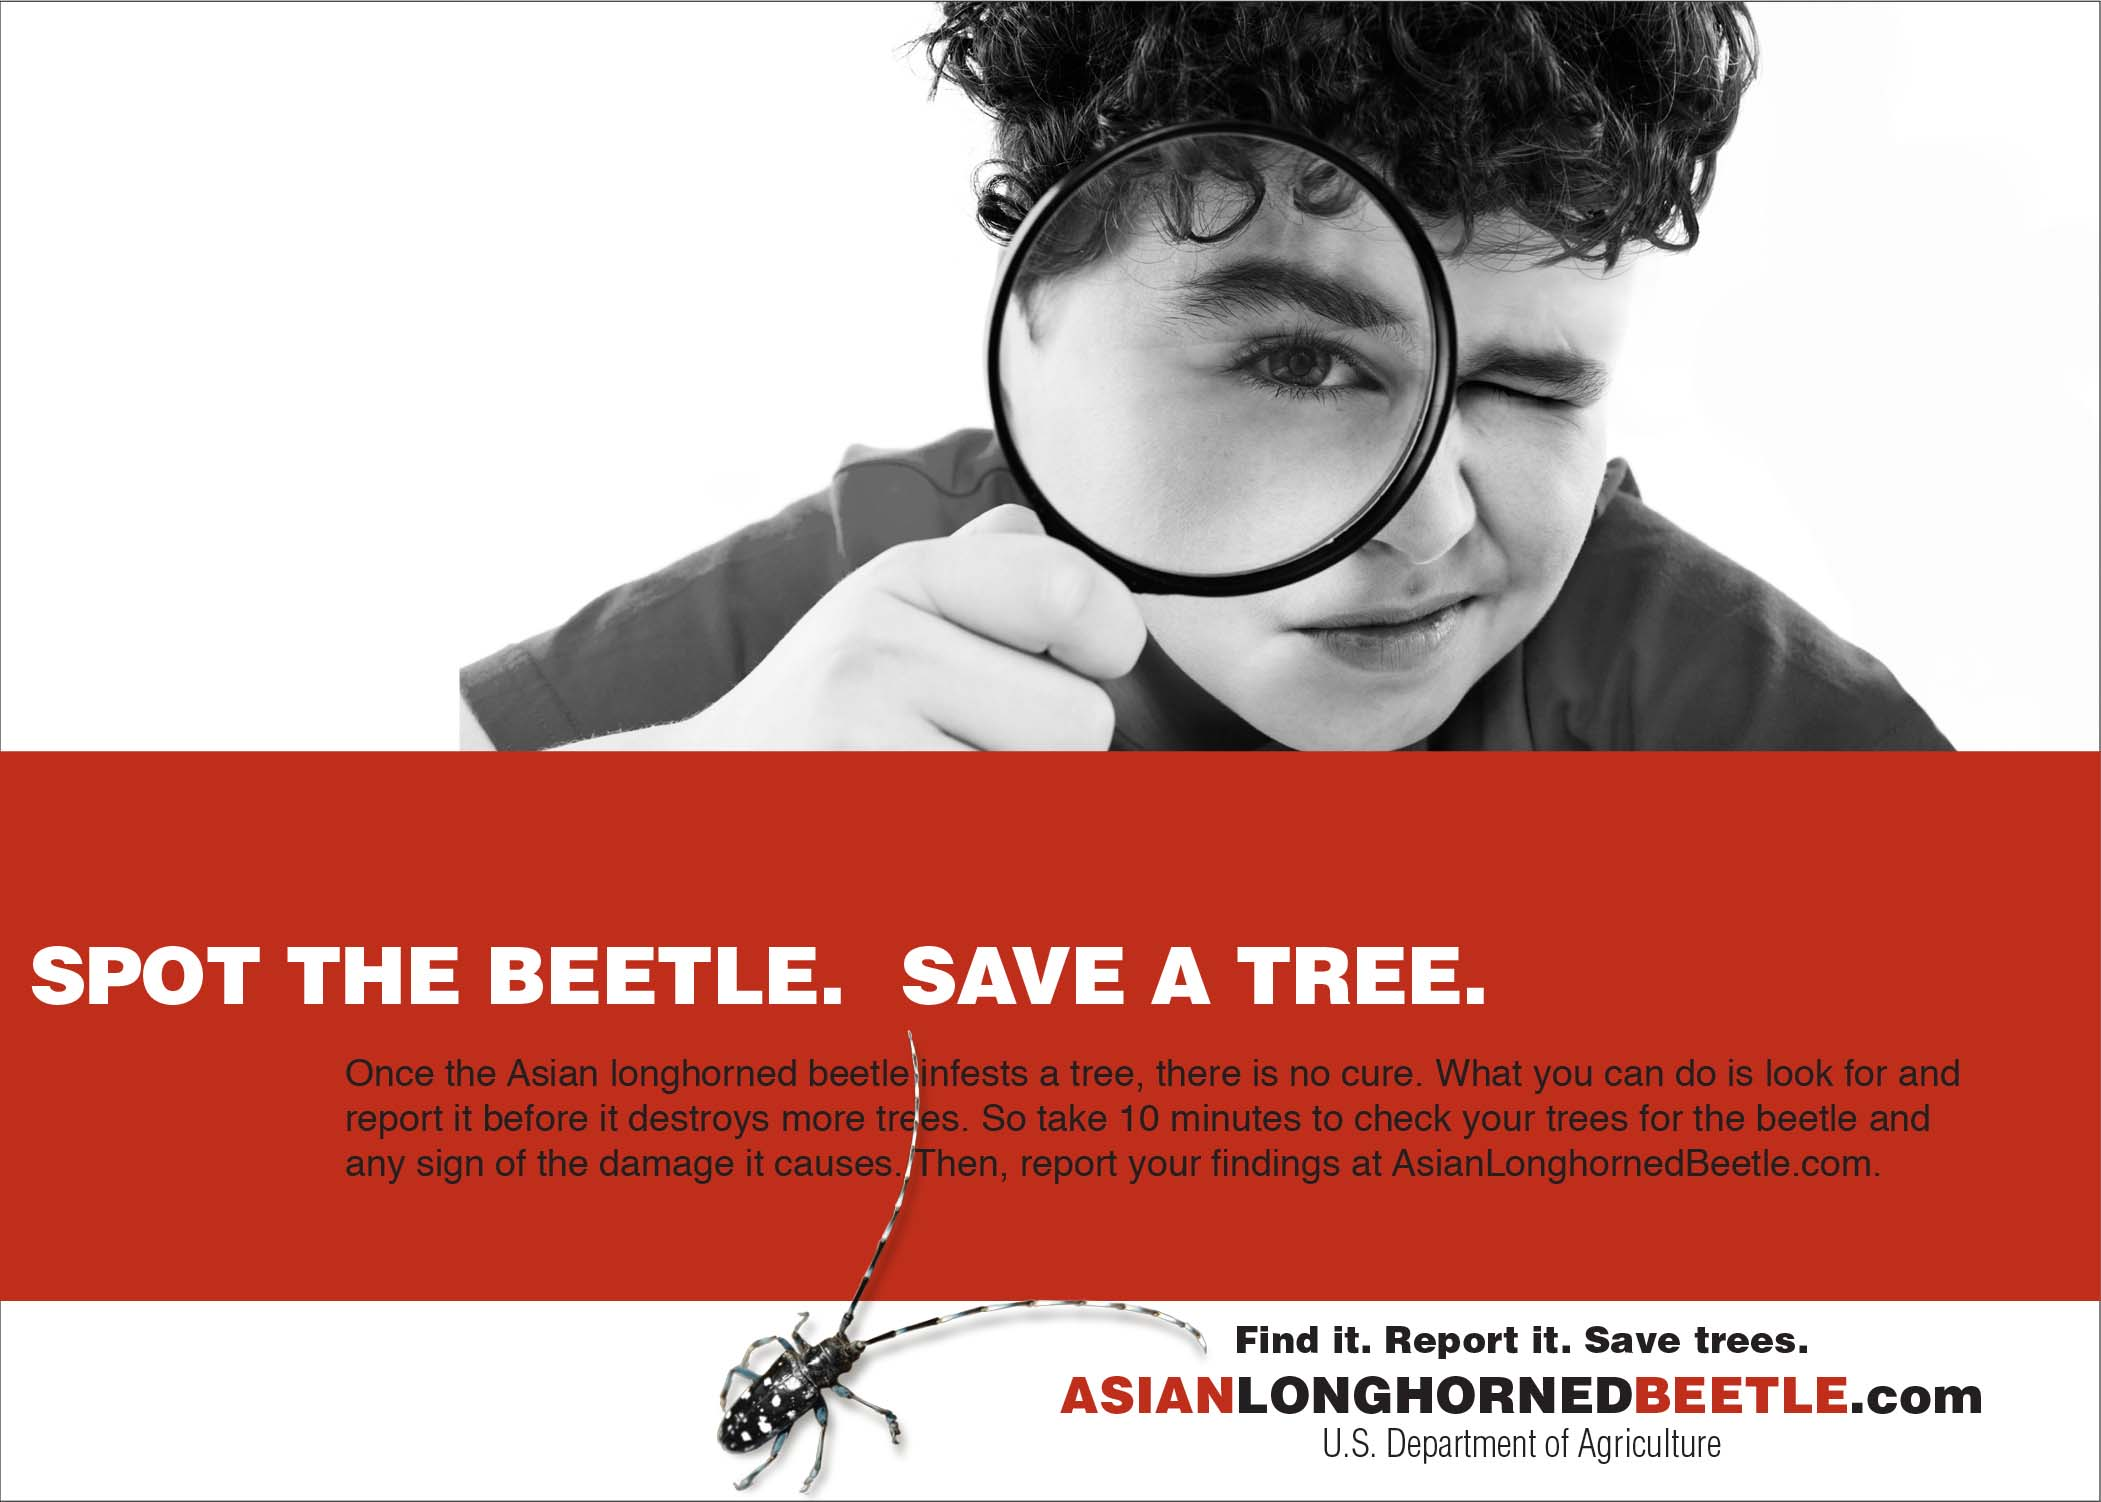 http://www.multivu.com/players/English/7277051-usda-august-tree-check-month-asian-longhorned-beetle-invasive-pest-psa/gallery/image/ecaa060b-9715-43e0-96ae-3a976e3dc74c.HR.jpg